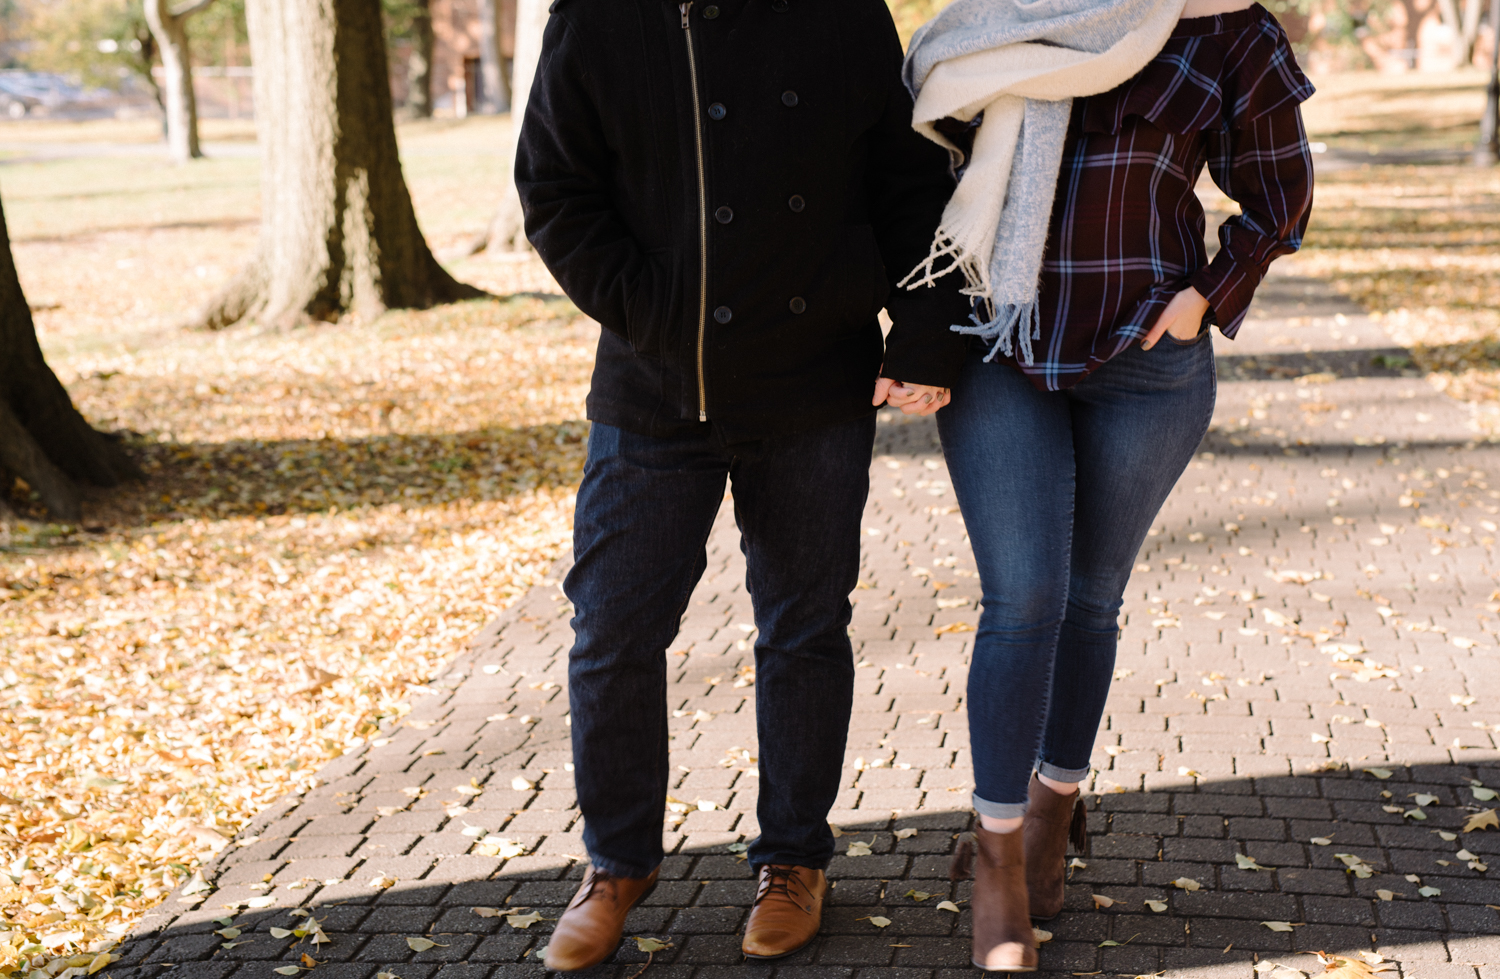 Melissa+Kenny- Watsessing Park Fall Engagement Session- Bloomfield New Jersey- Olivia Christina Photo-10.JPG